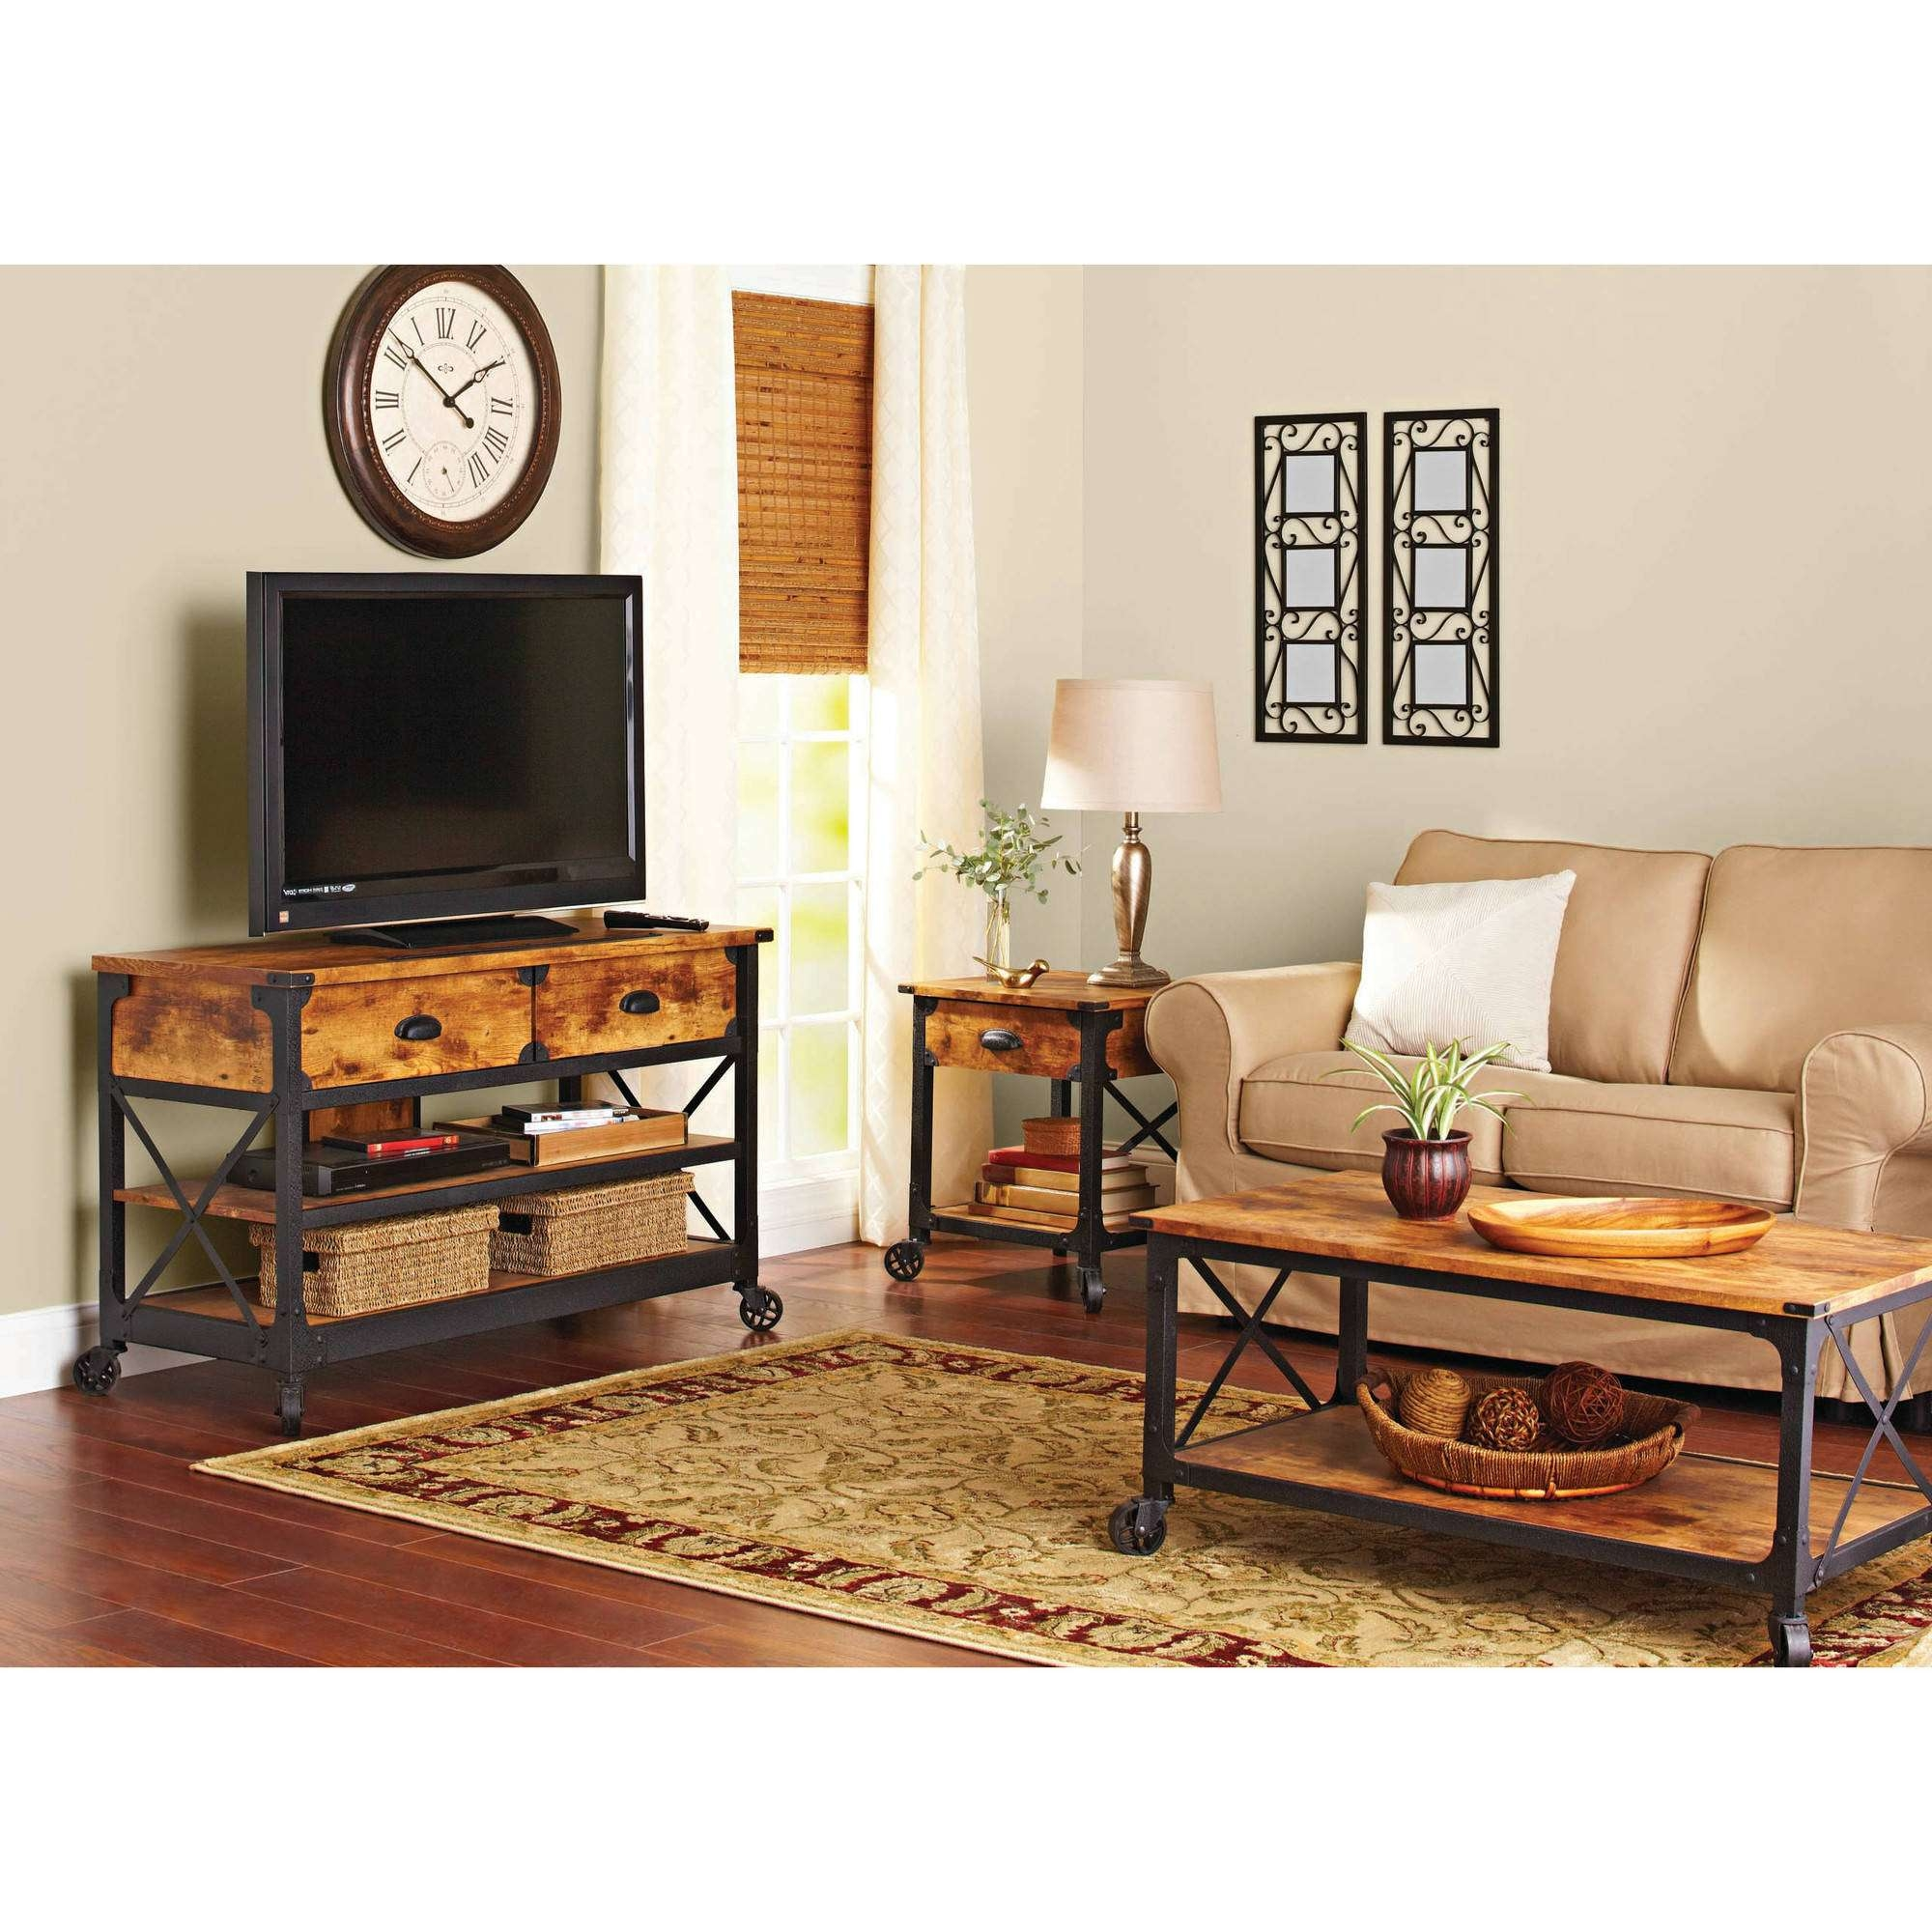 Featured Photo of Rustic Coffee Table And Tv Stands